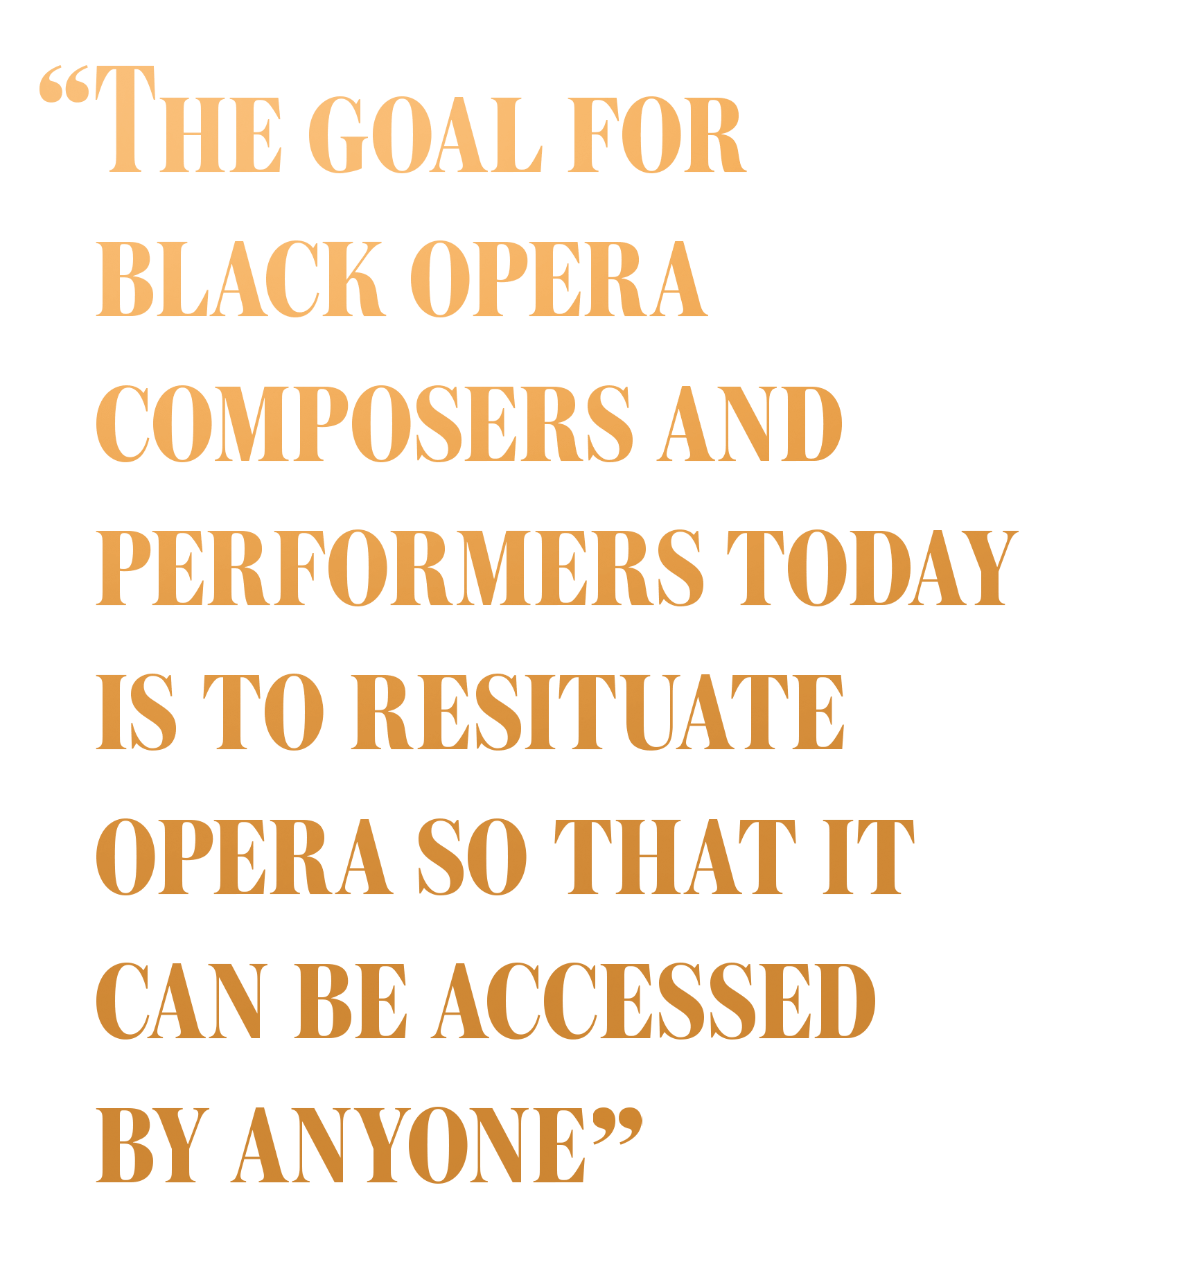 The goal for black opera composers and performers today is to resituate opera so that it can be accessed by anyone.